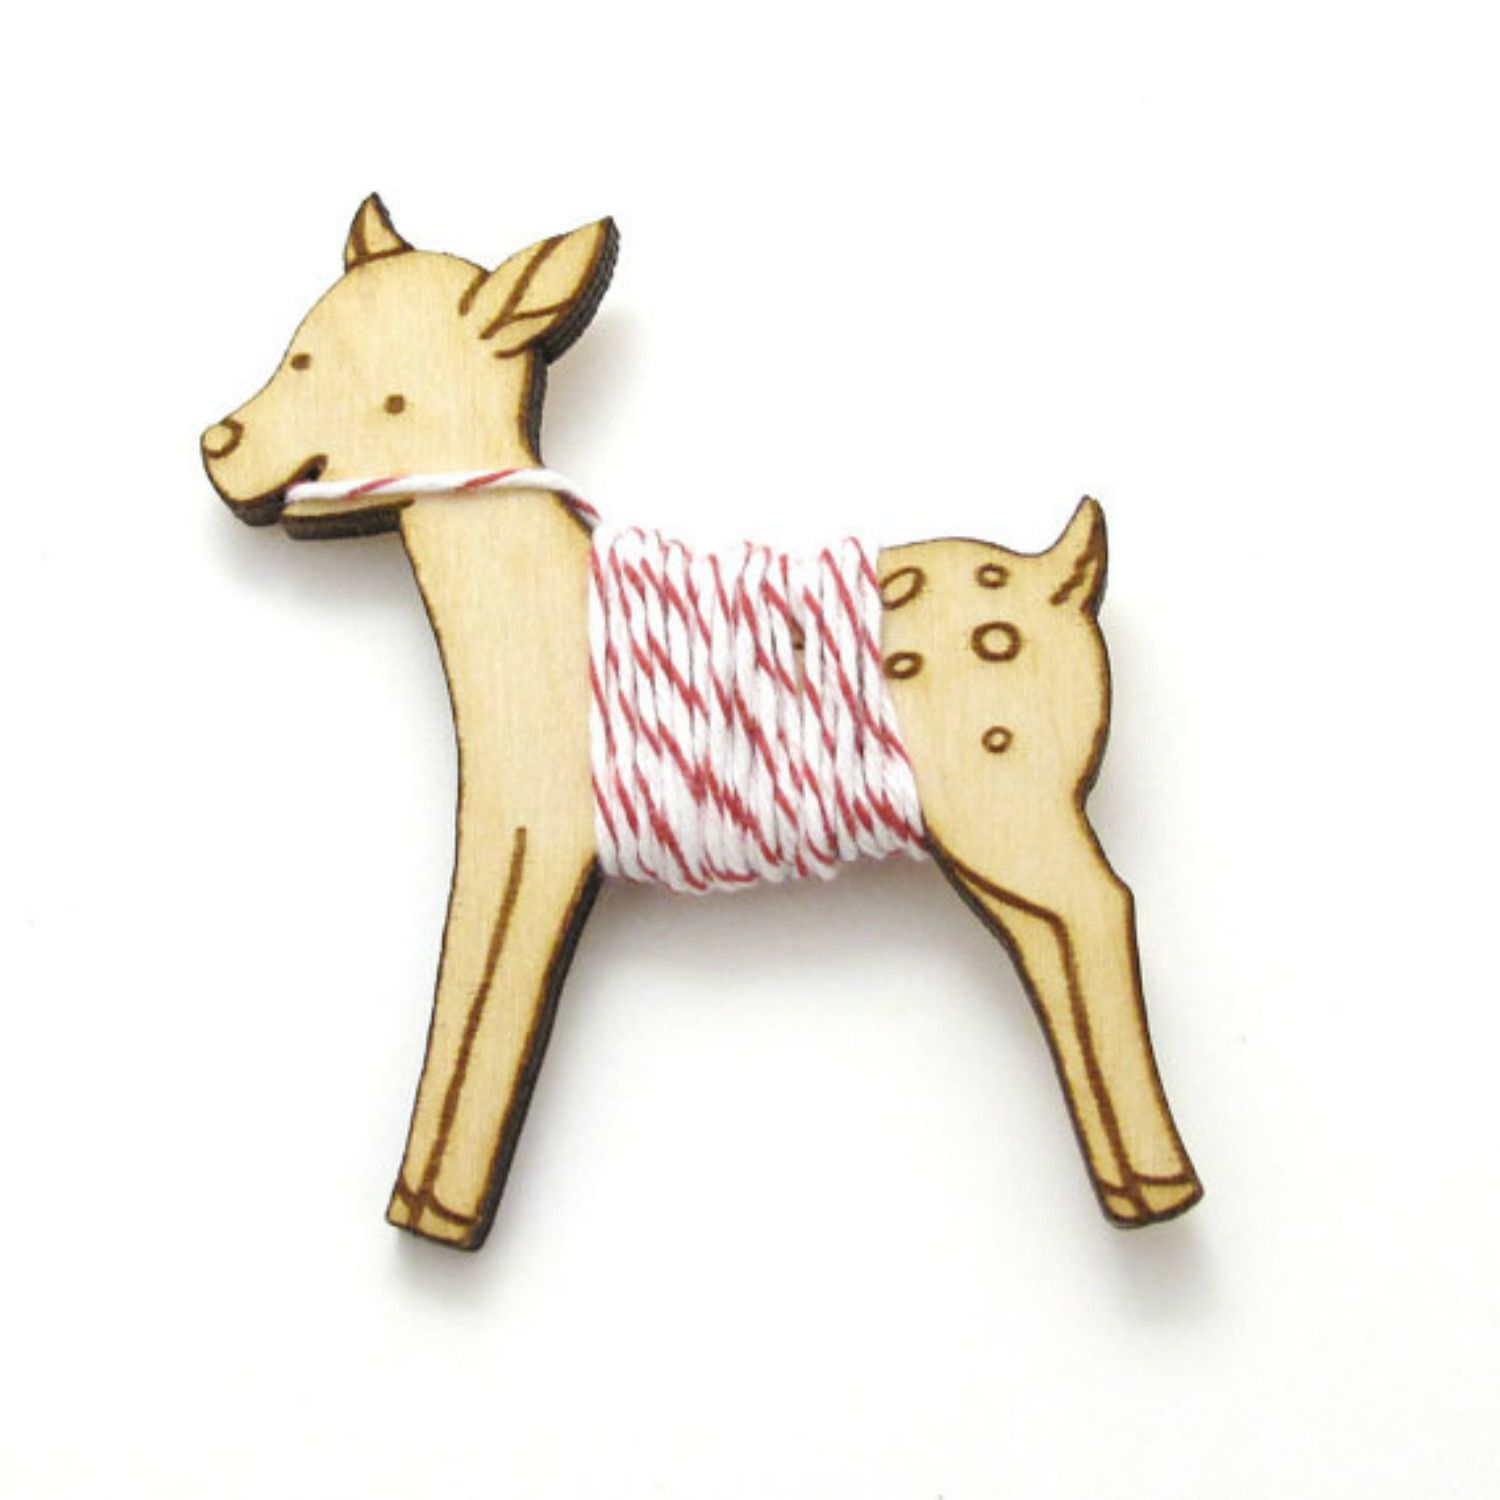 Deer floss holder